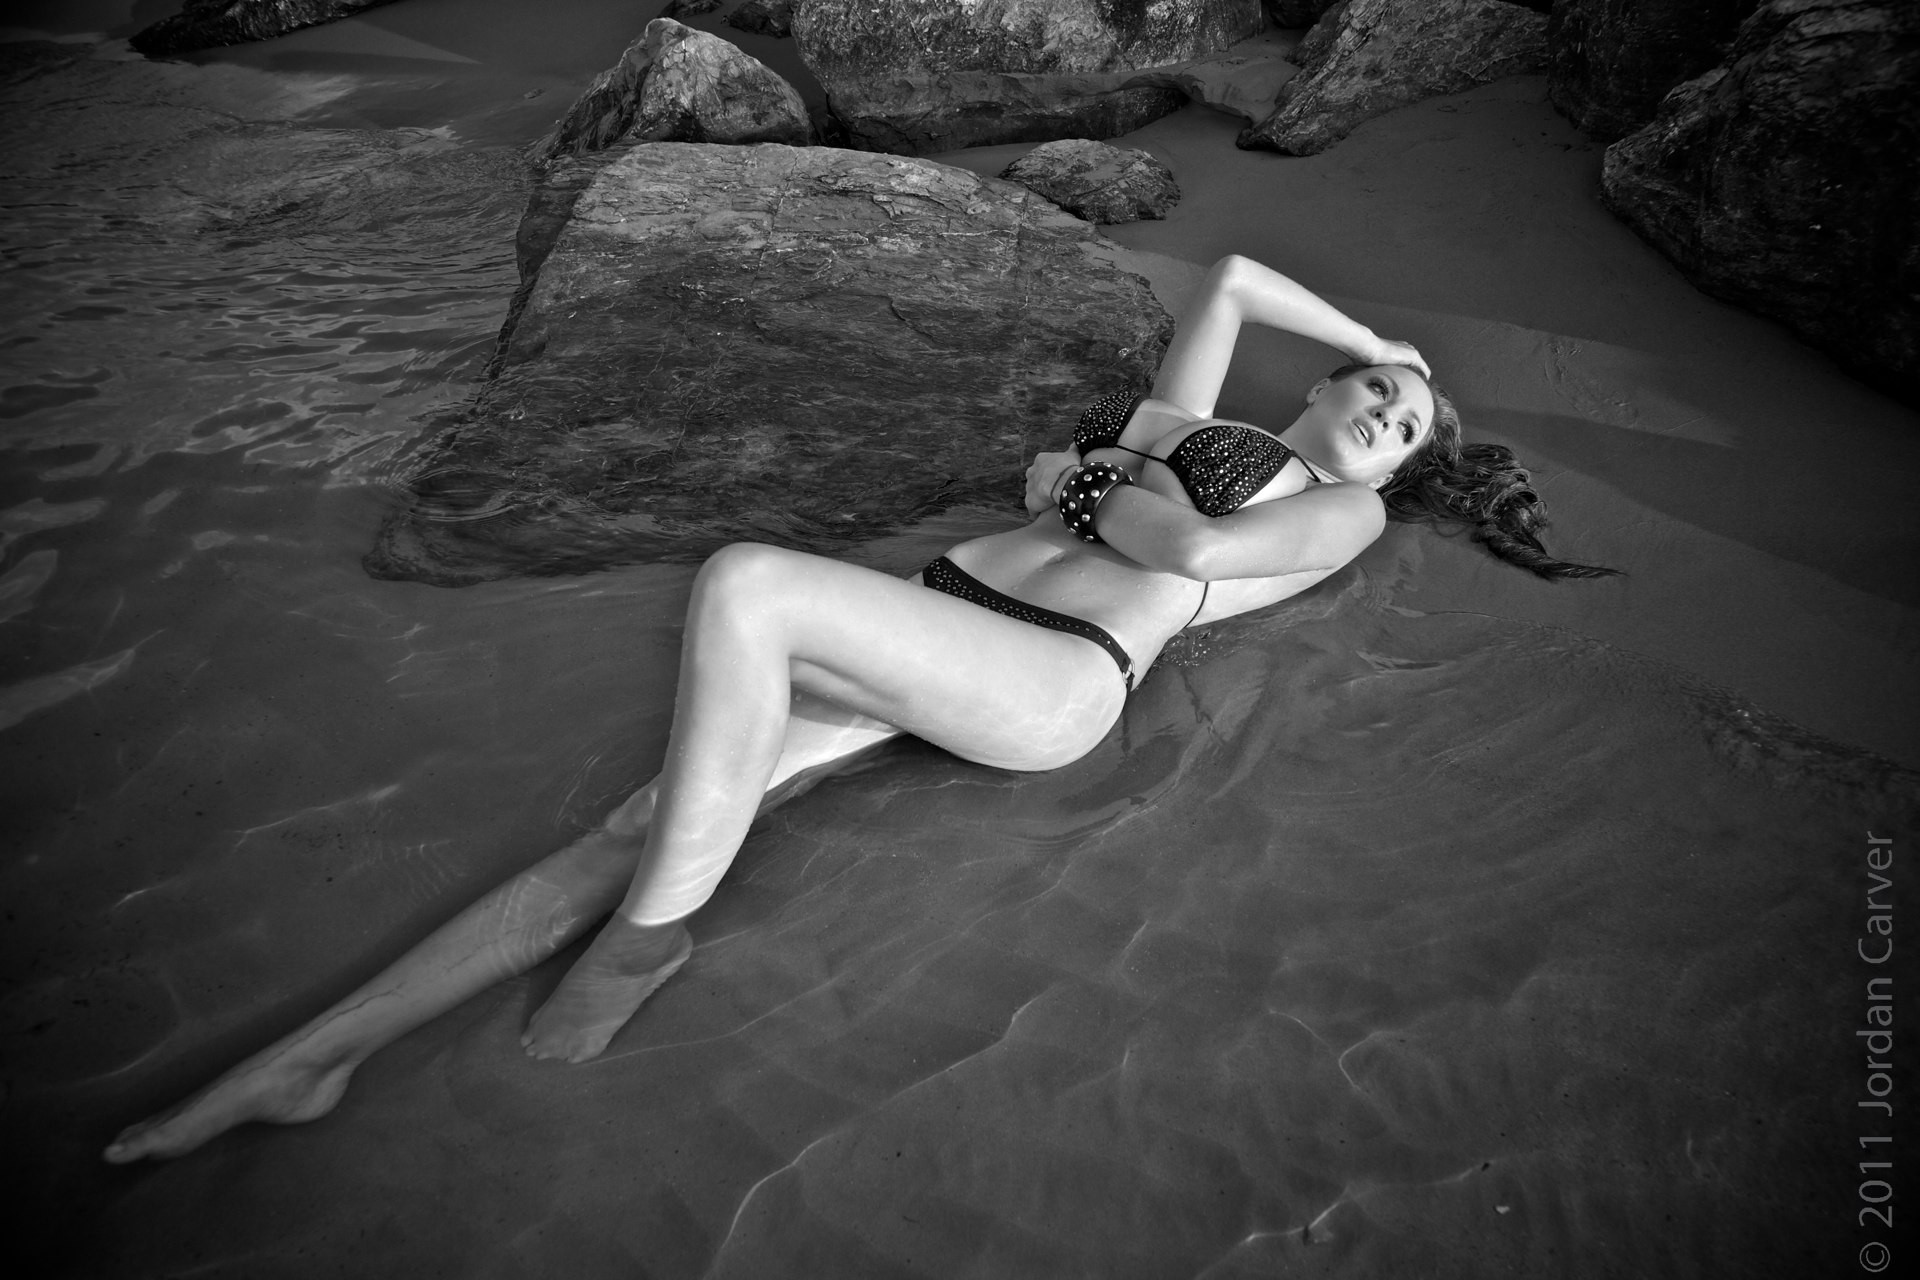 woman monochrome models lying down bikini HD Wallpaper